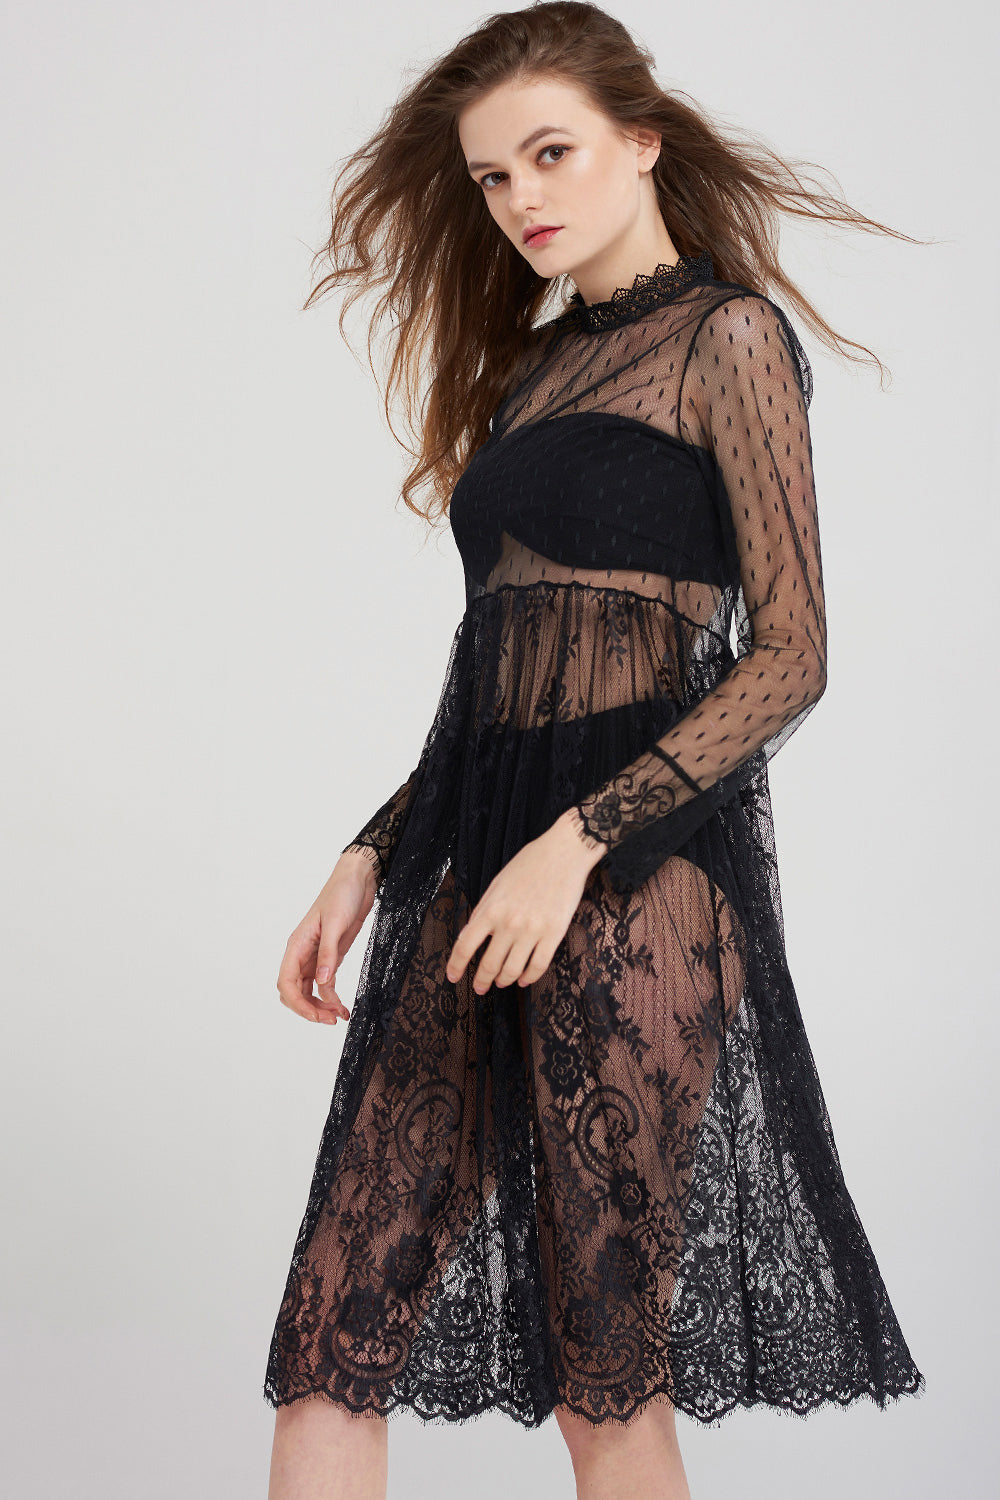 Lily Inner Lace Dress